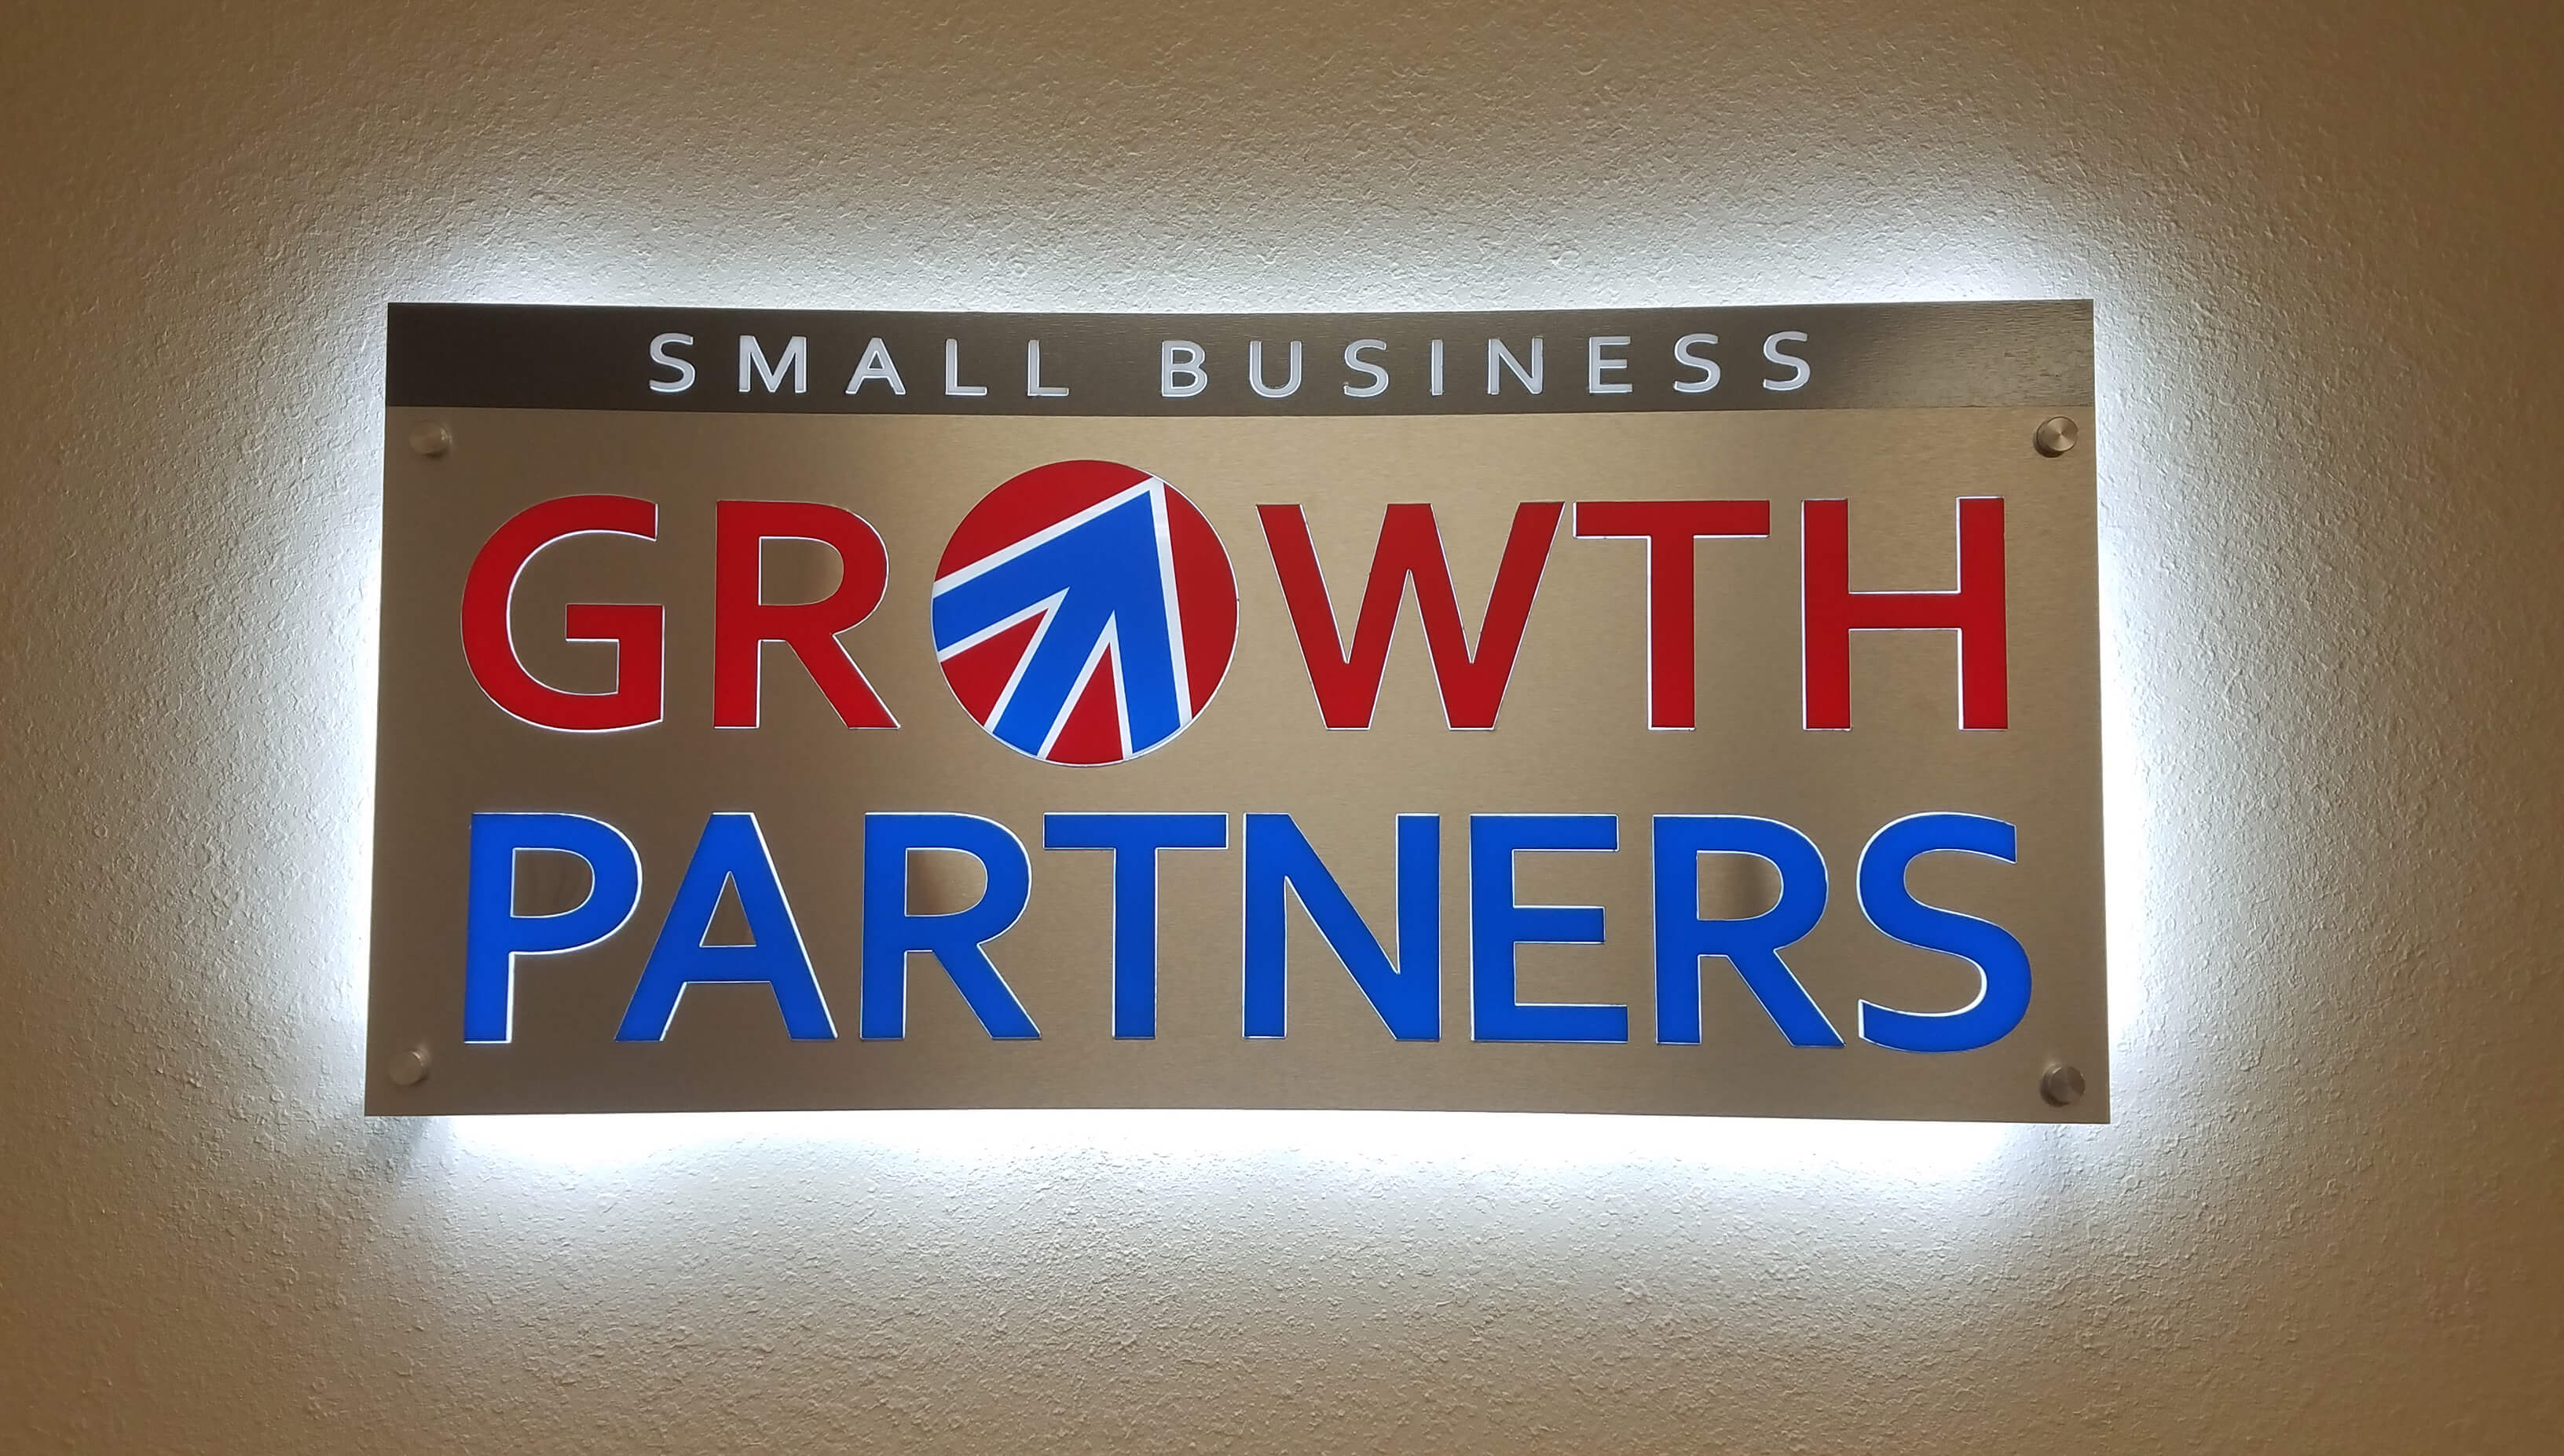 Small Business Growth Partners Interior LIt Lobby Sign